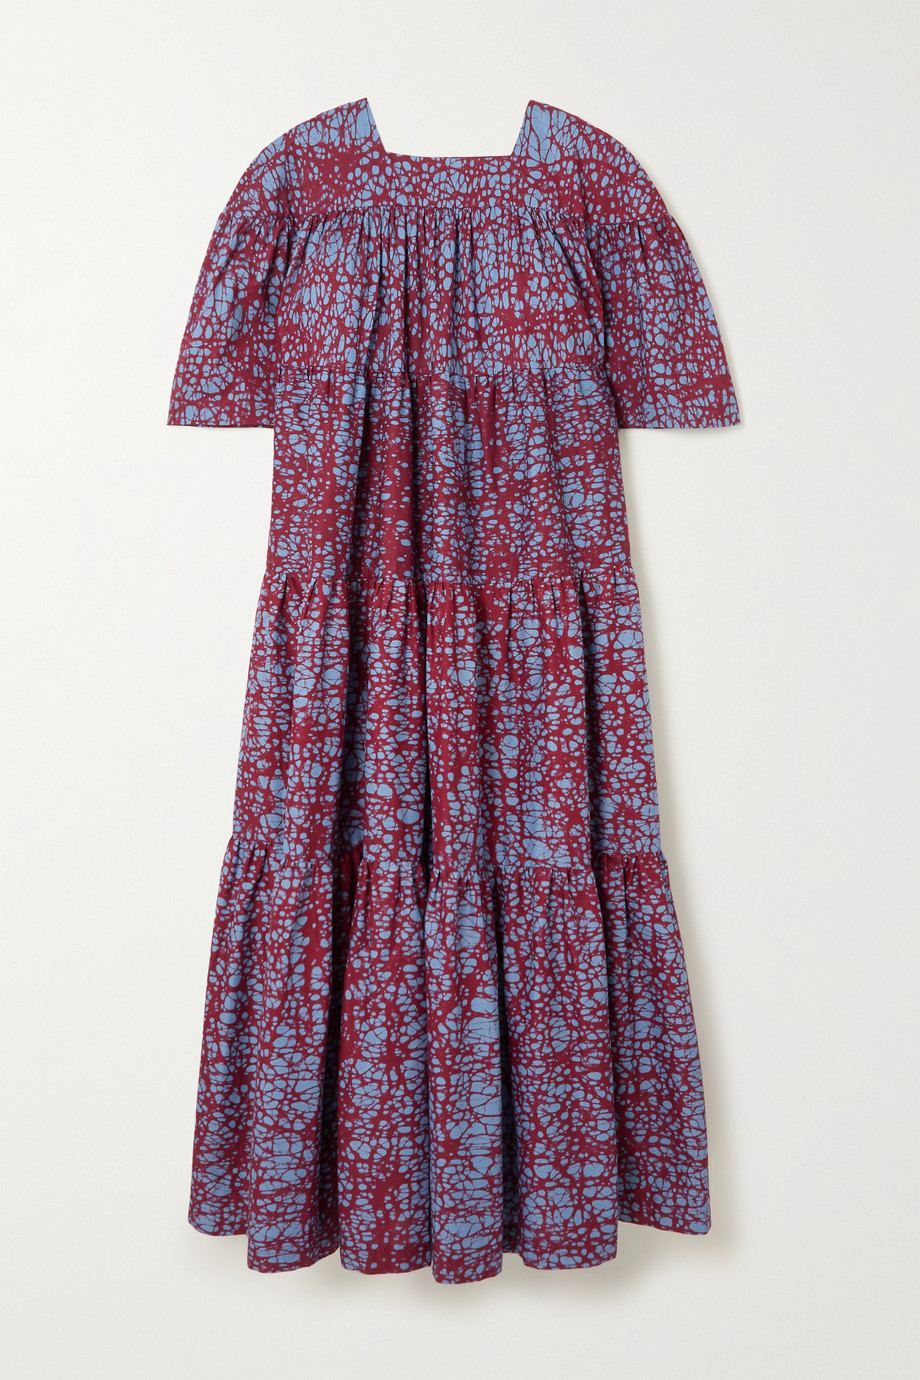 Odile Jacobs Tiered printed waxed-cotton midi dress